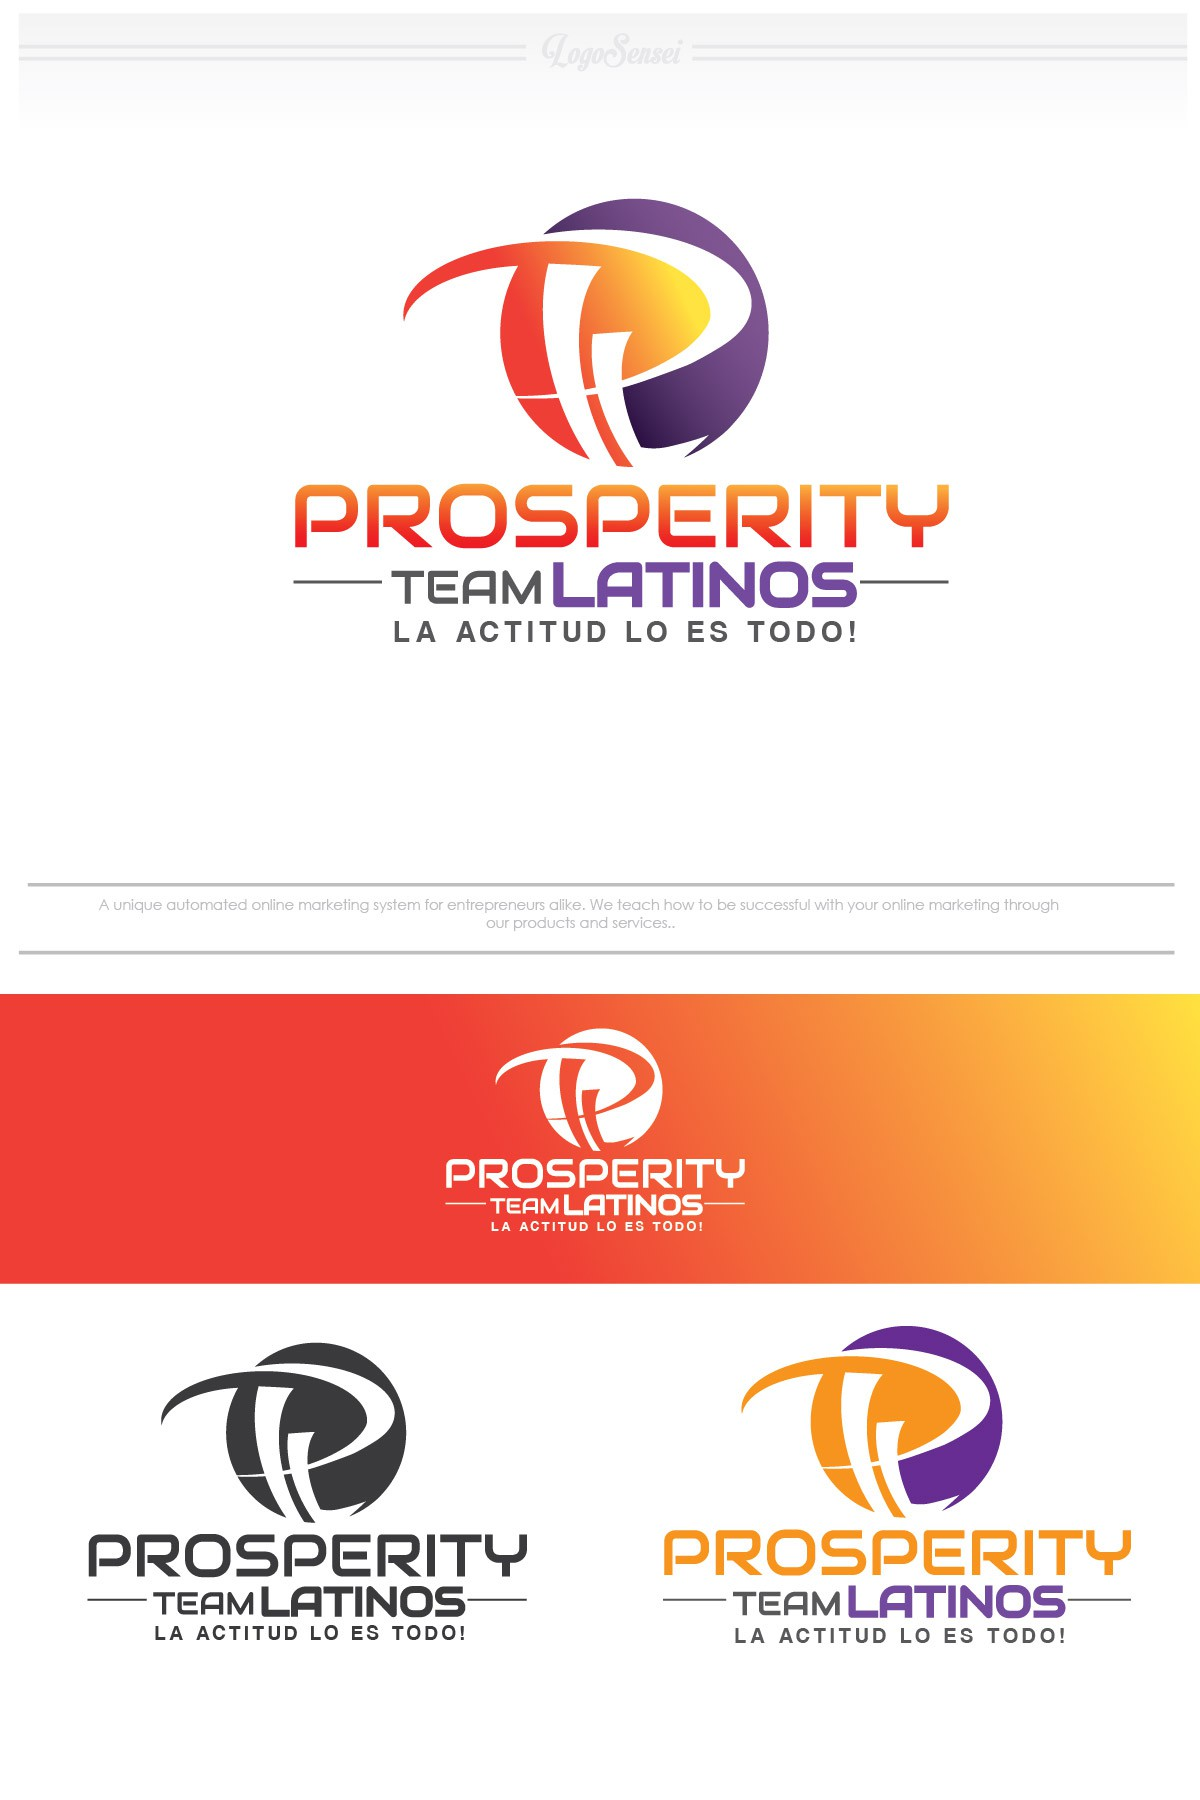 Help Prosperity Team Latinos with a new logo